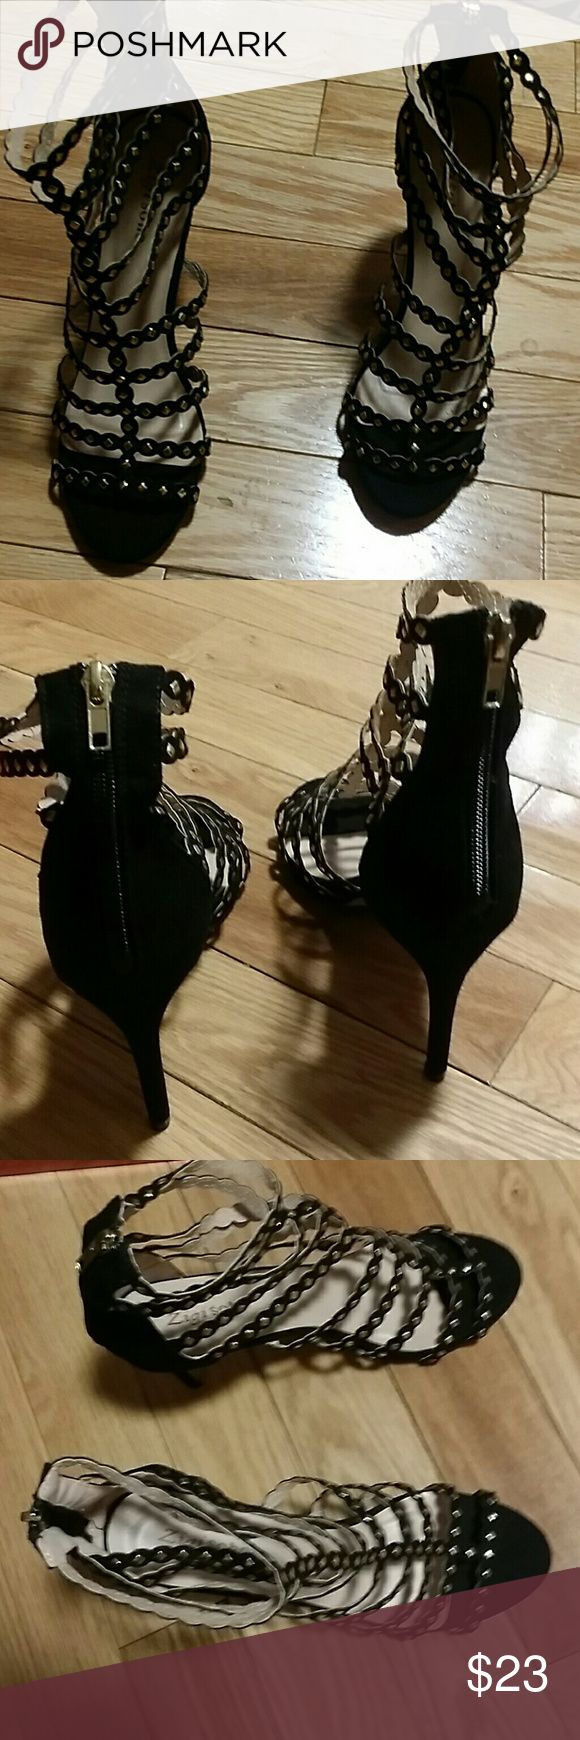 Woman's shoes 3 inch heels black zips up in back gold studs Nwot Zigi Soho Shoes